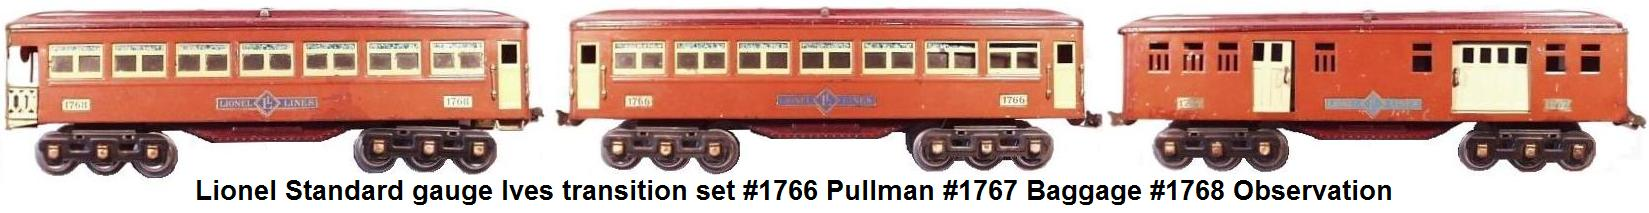 Lionel Standard gauge Ives very rare transition set with 6 wheel trucks on the #1766 Pullman, #1767 Baggage car, and #1768 Observation car